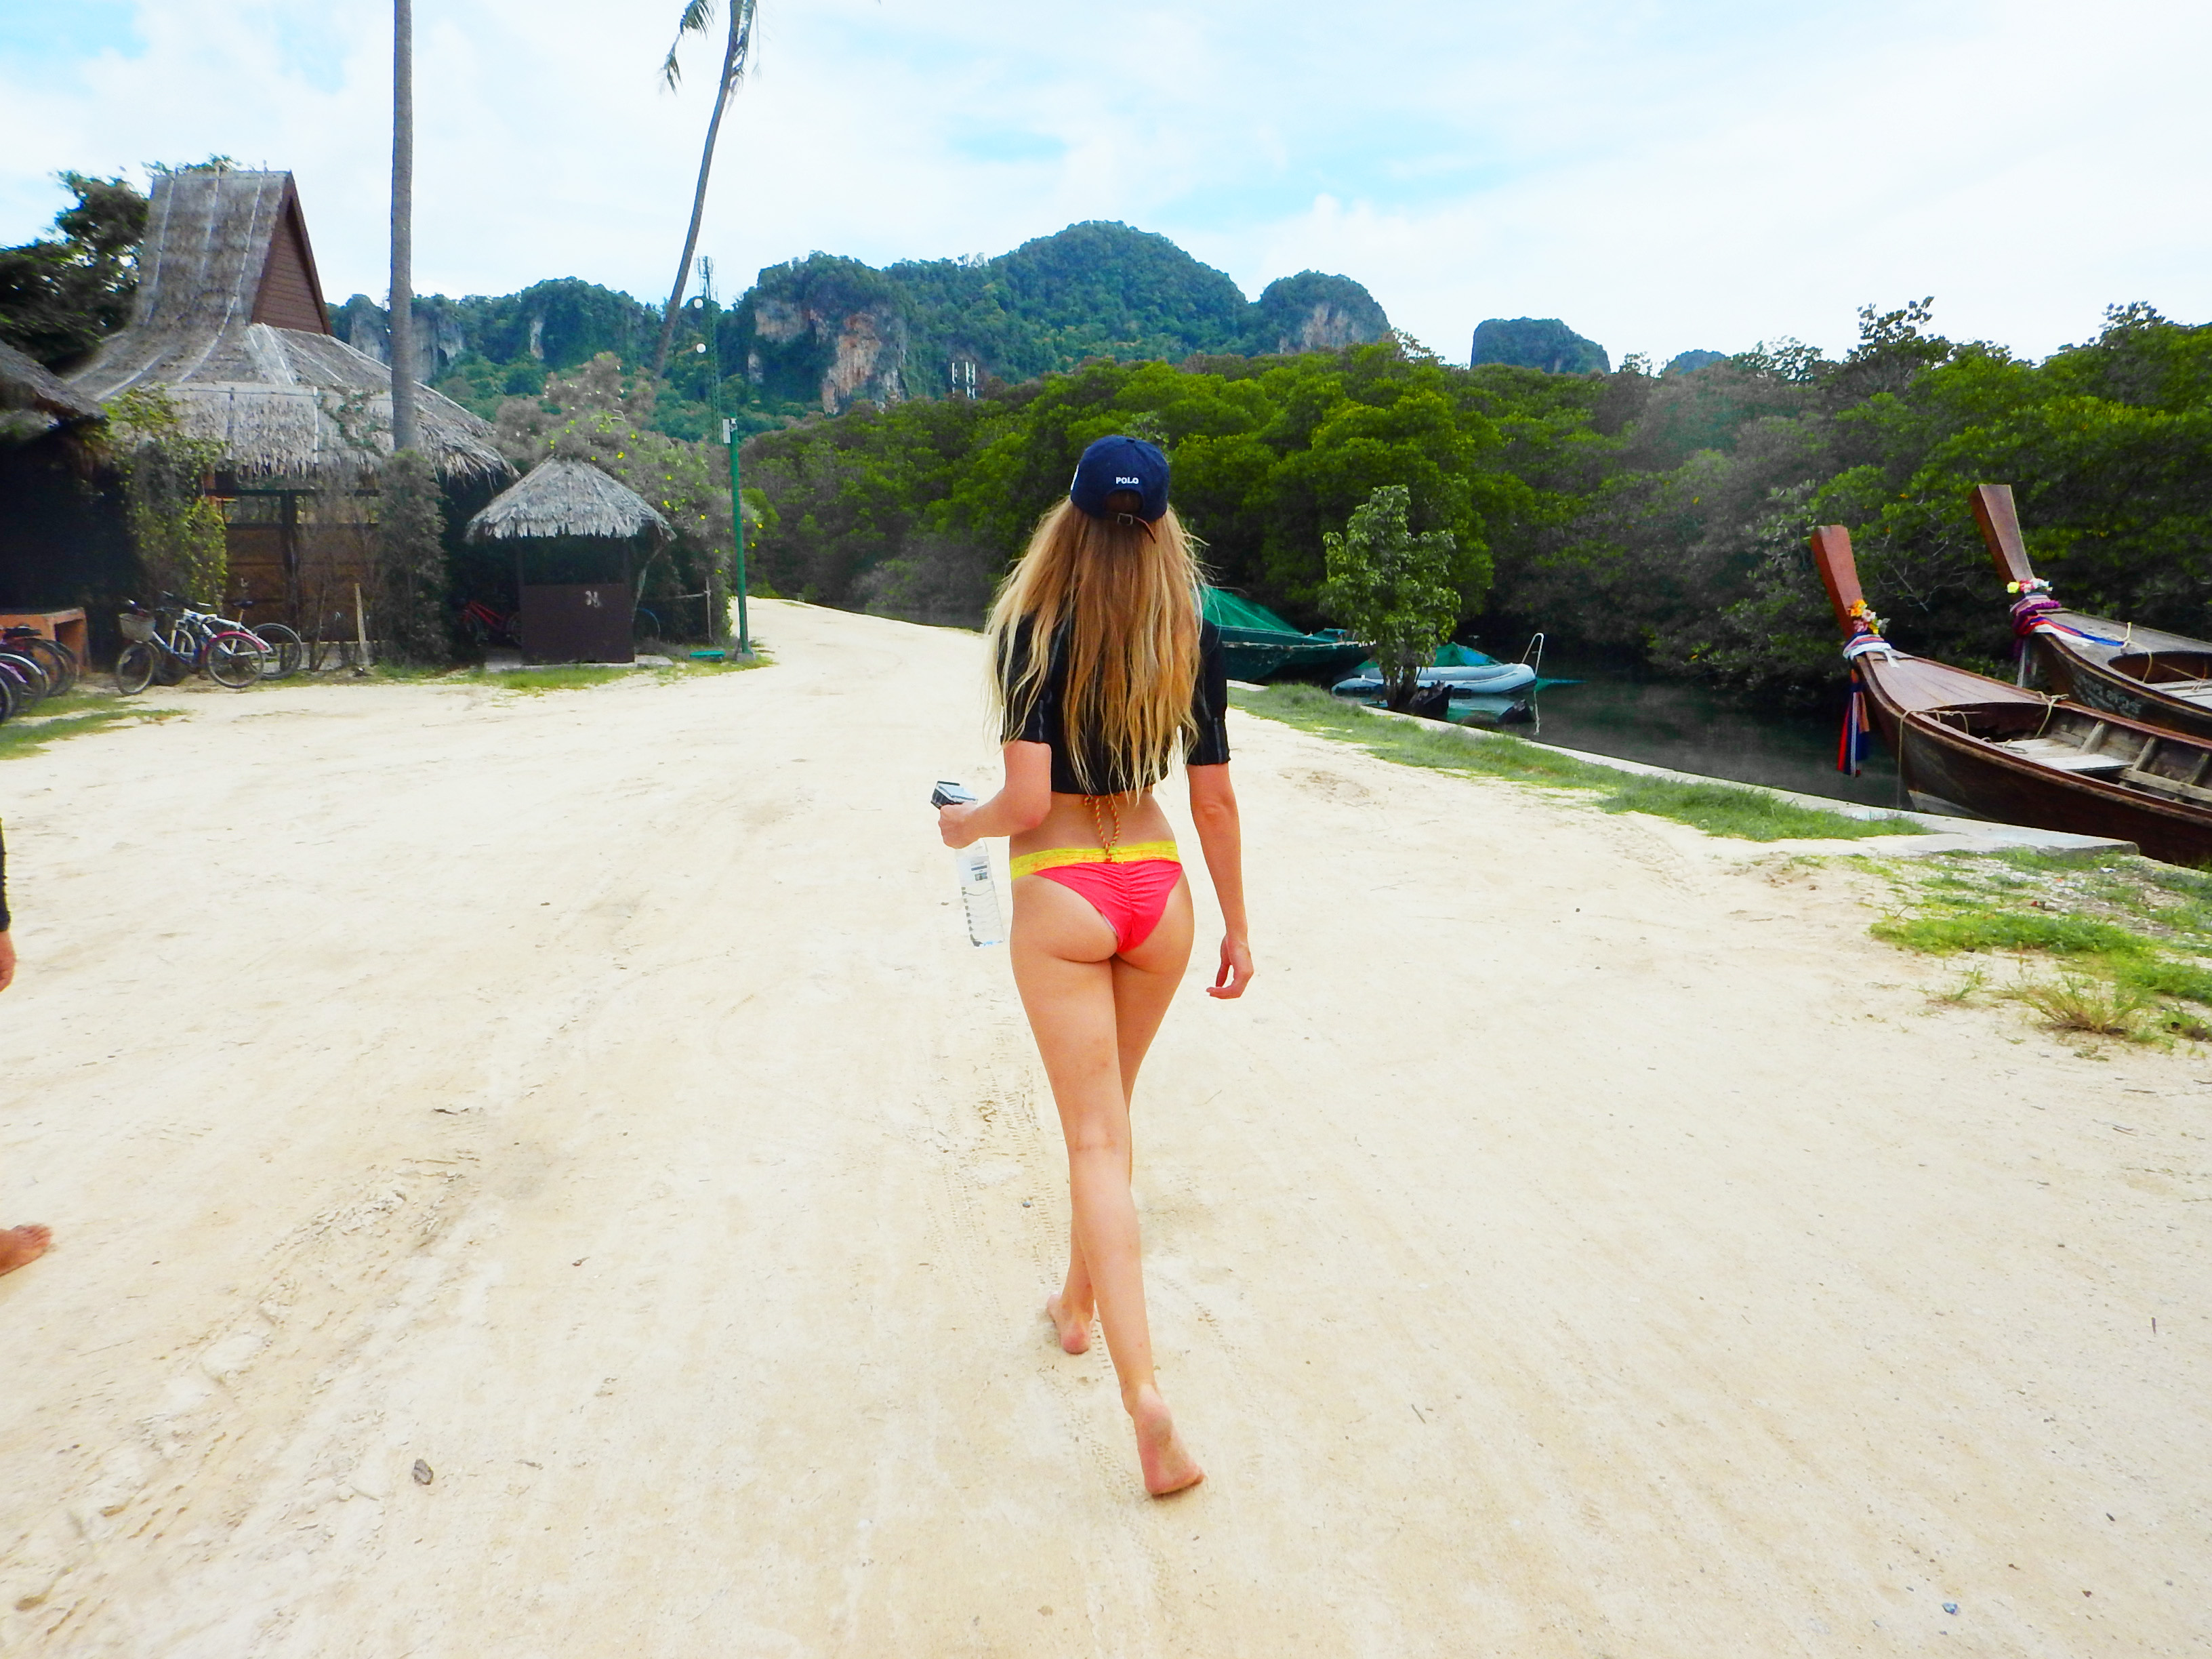 Kajaking at KohPhiPhi with Holiday Inn - by Leslie Huhn